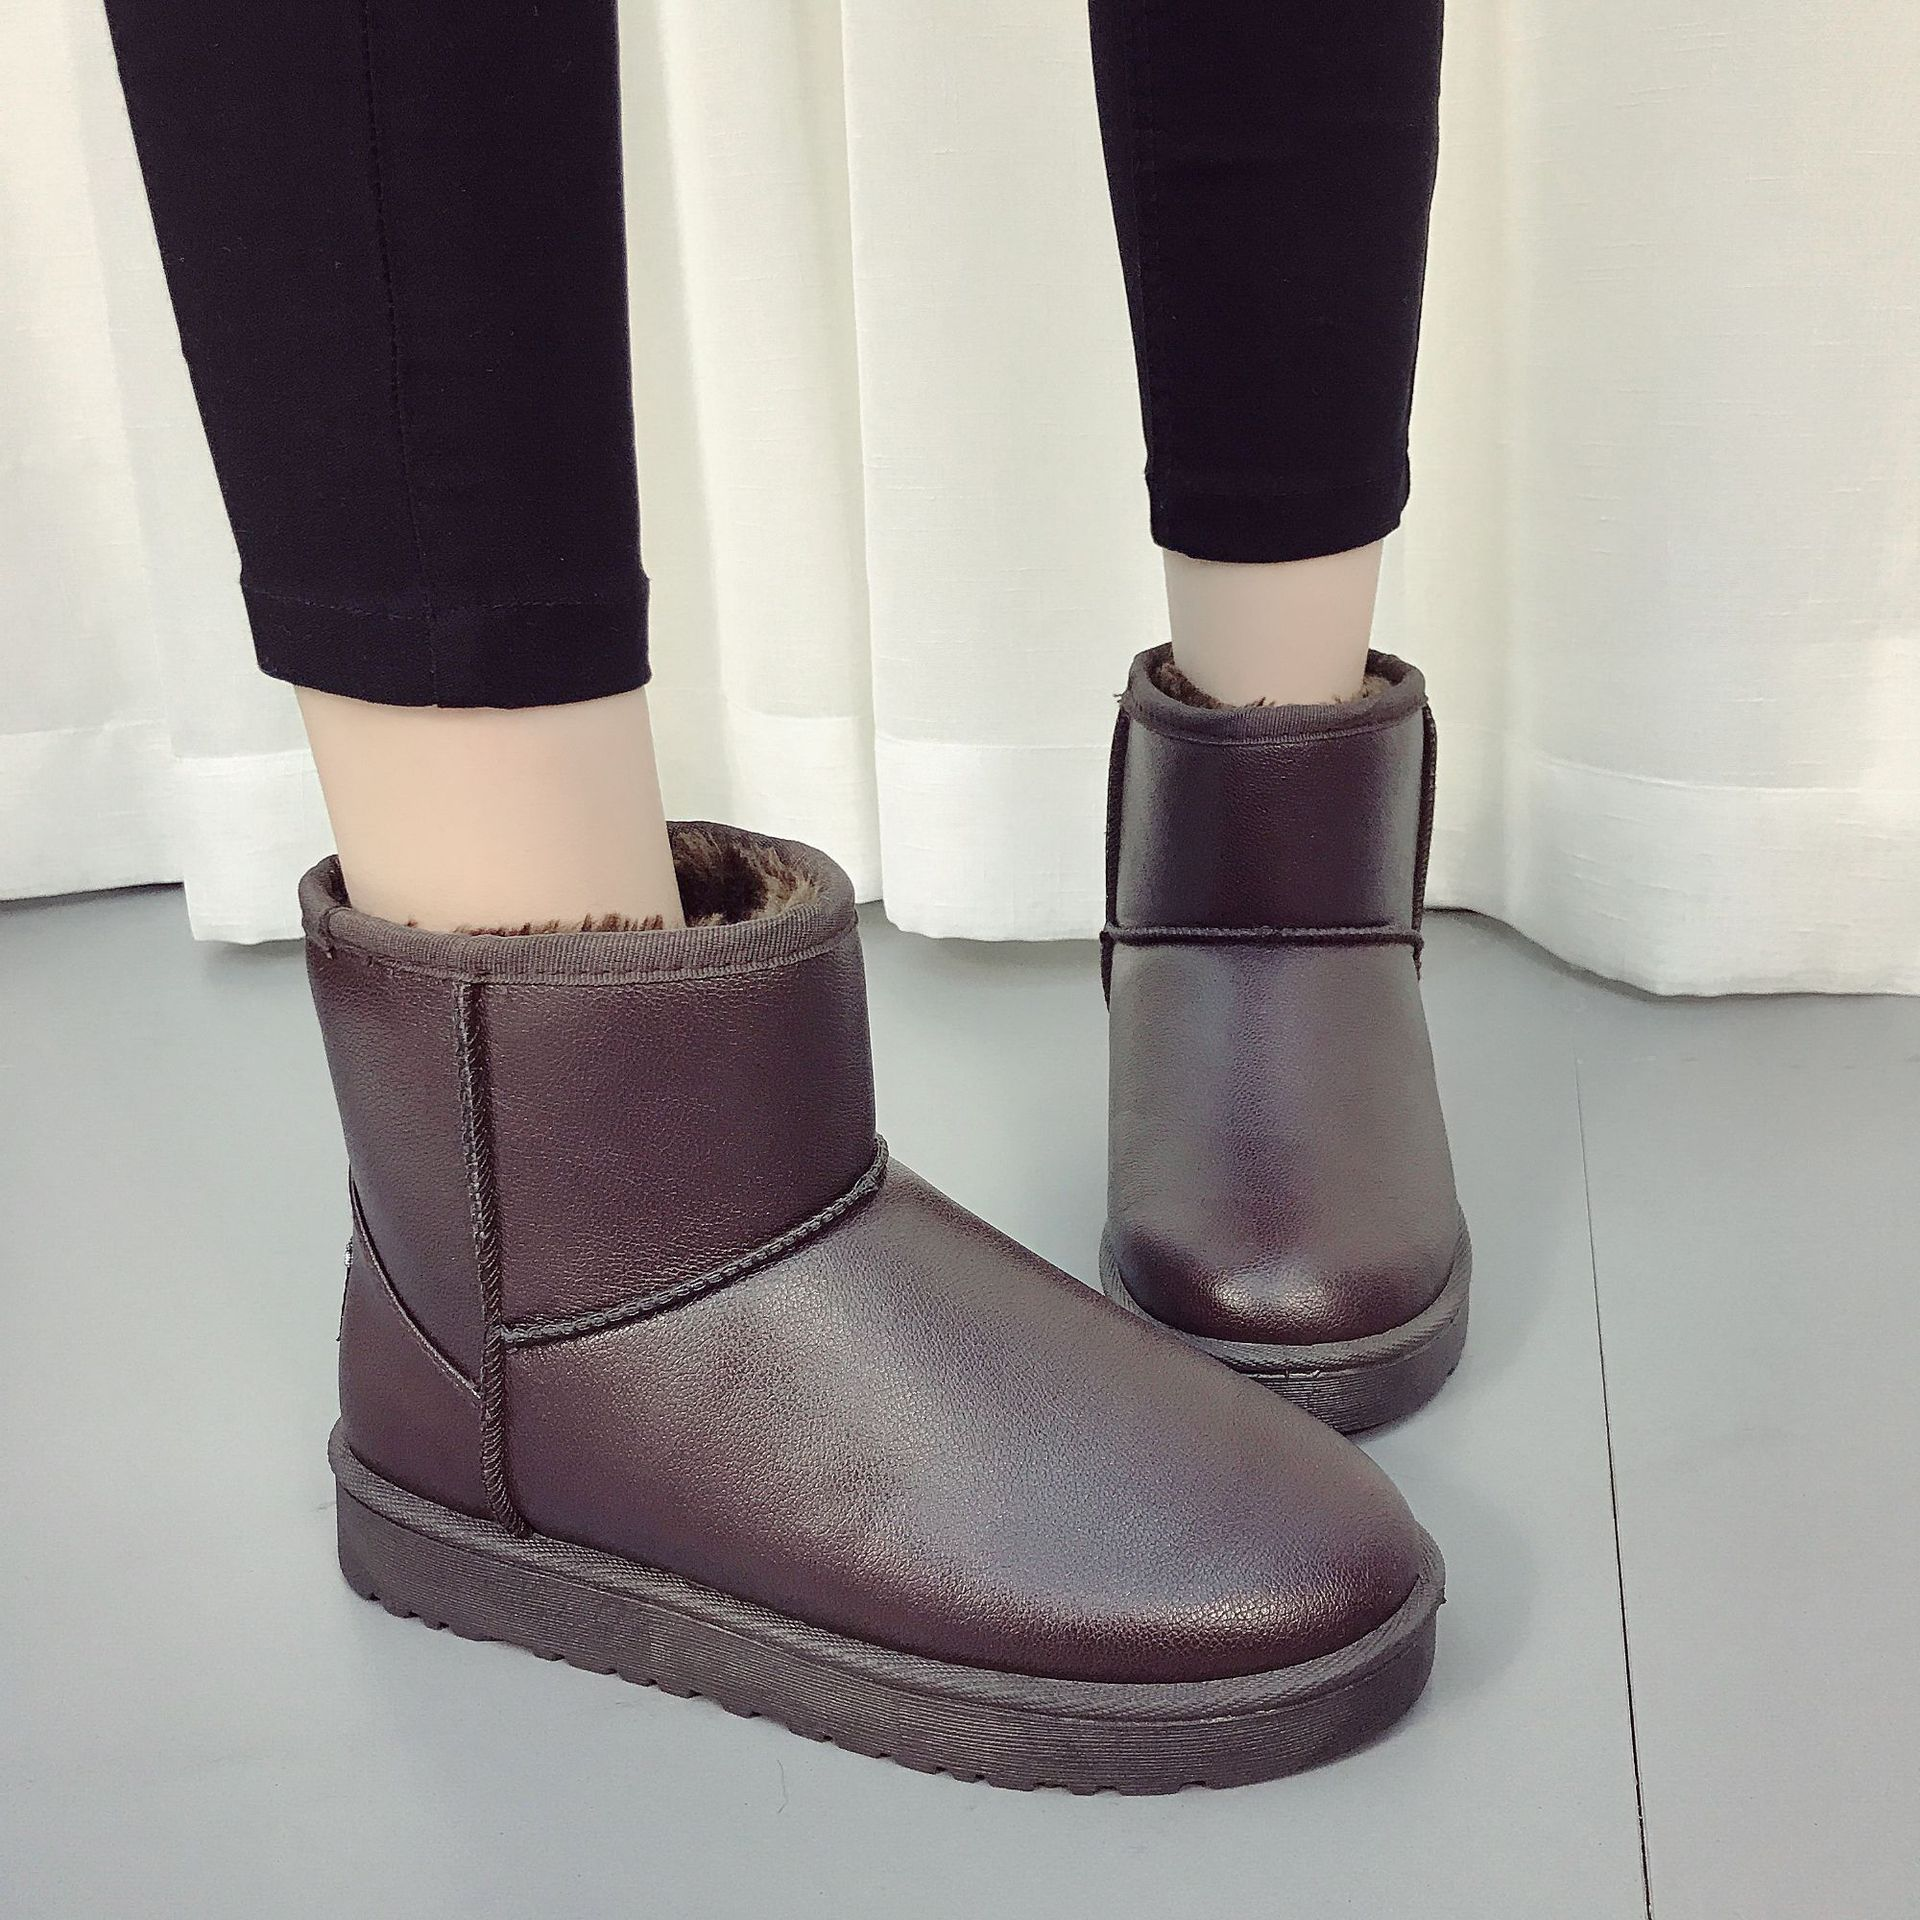 2020 New Women's Snow Boots Ankle Winter Boots For Women Female Snow Shoes Ladies Flats Slip On Warm Plush Botas Mujer Plus Size